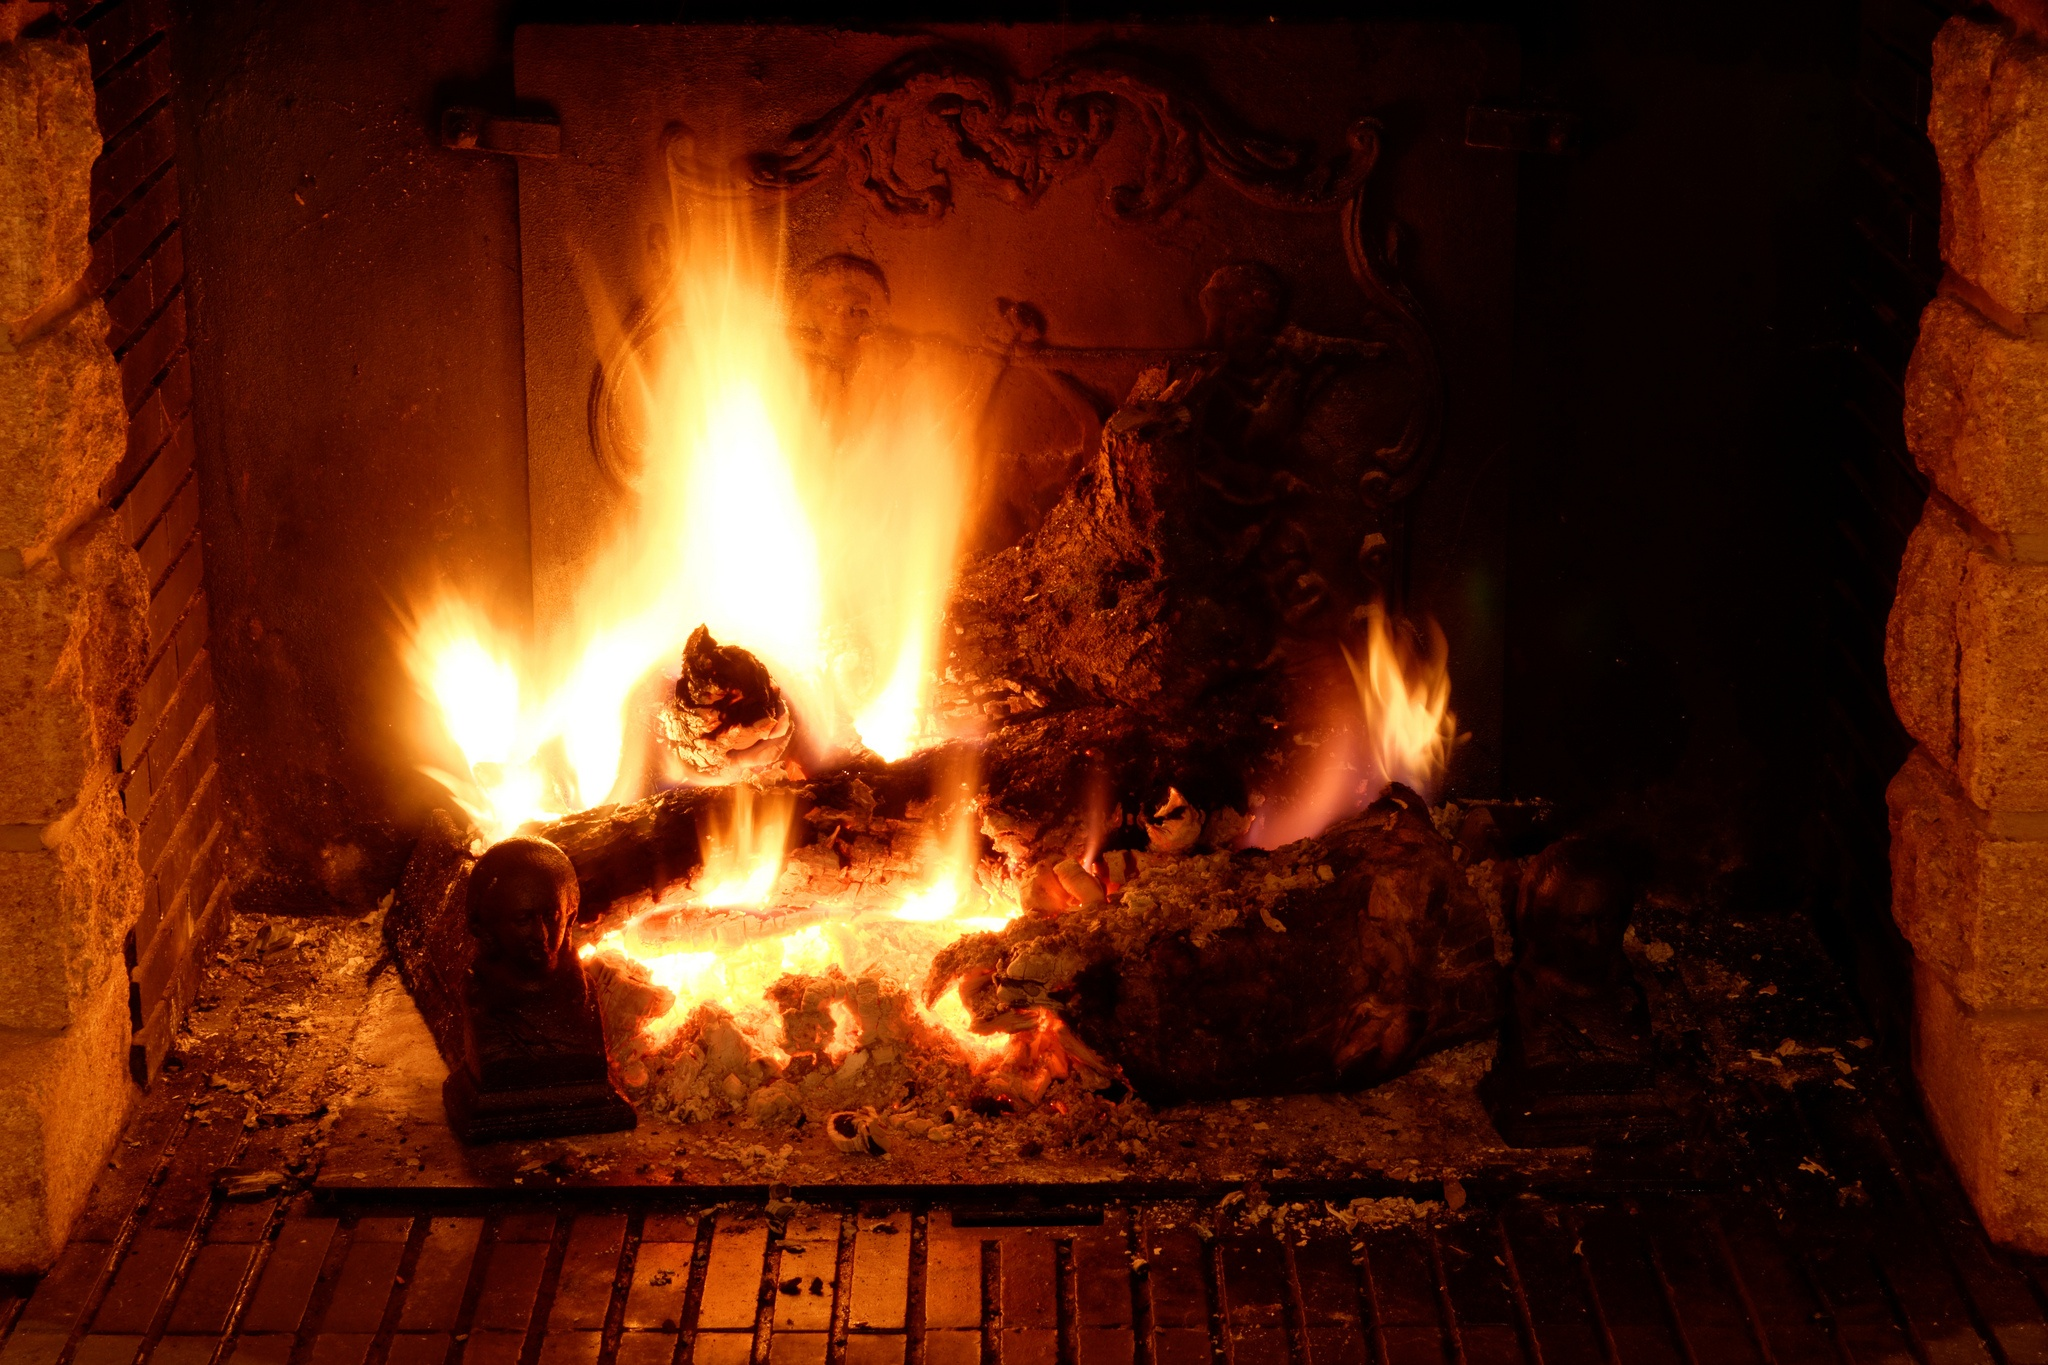 A fire in a fireplace.